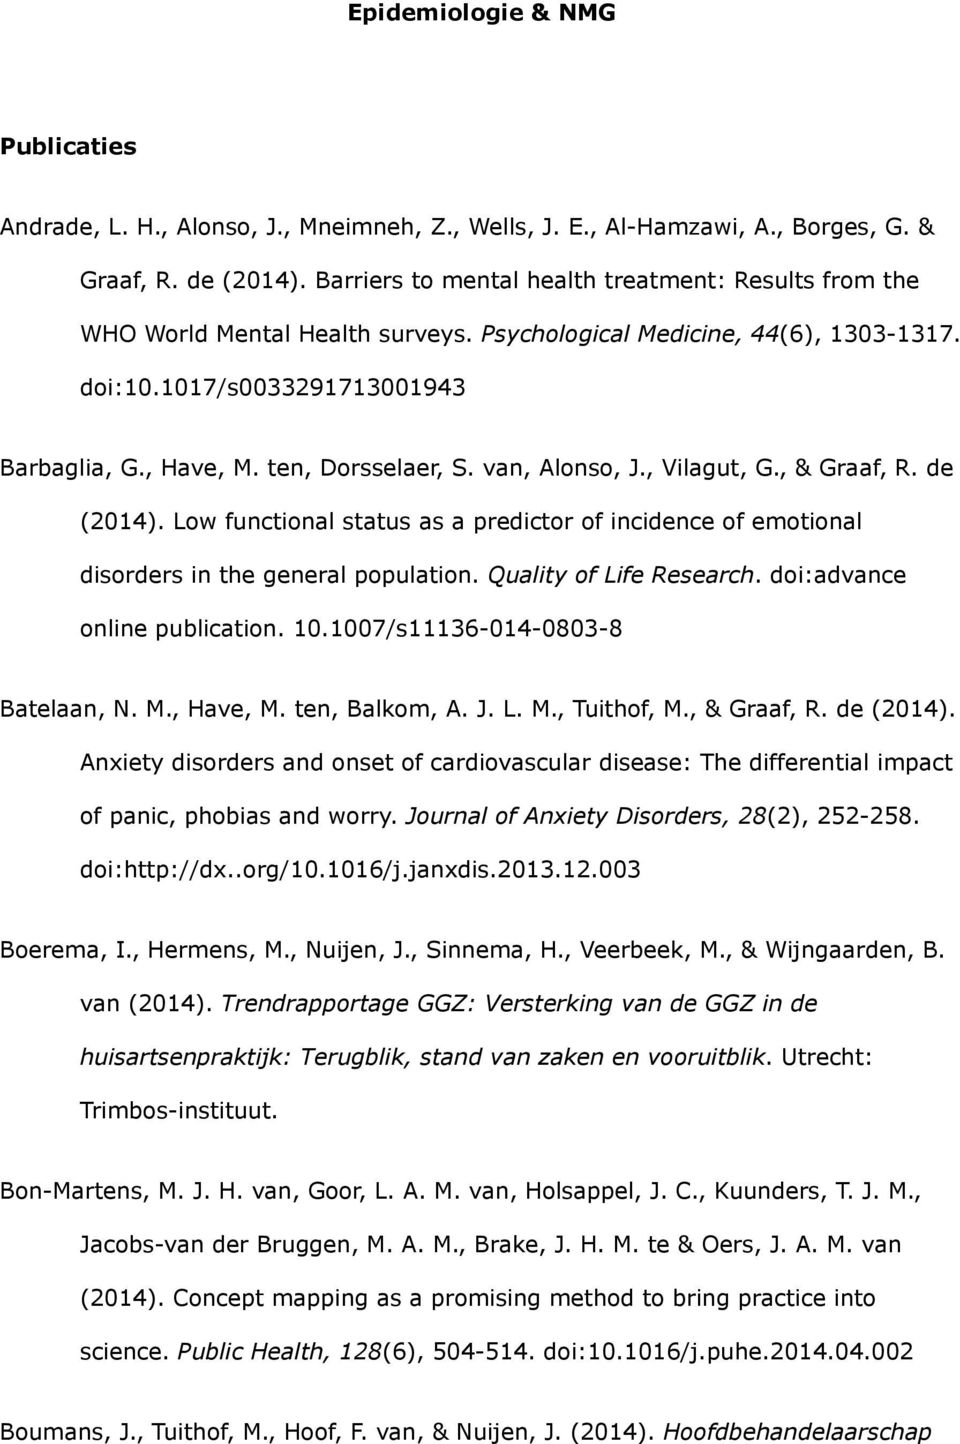 ten, Dorsselaer, S. van, Alonso, J., Vilagut, G., & Graaf, R. de (2014). Low functional status as a predictor of incidence of emotional disorders in the general population. Quality of Life Research.